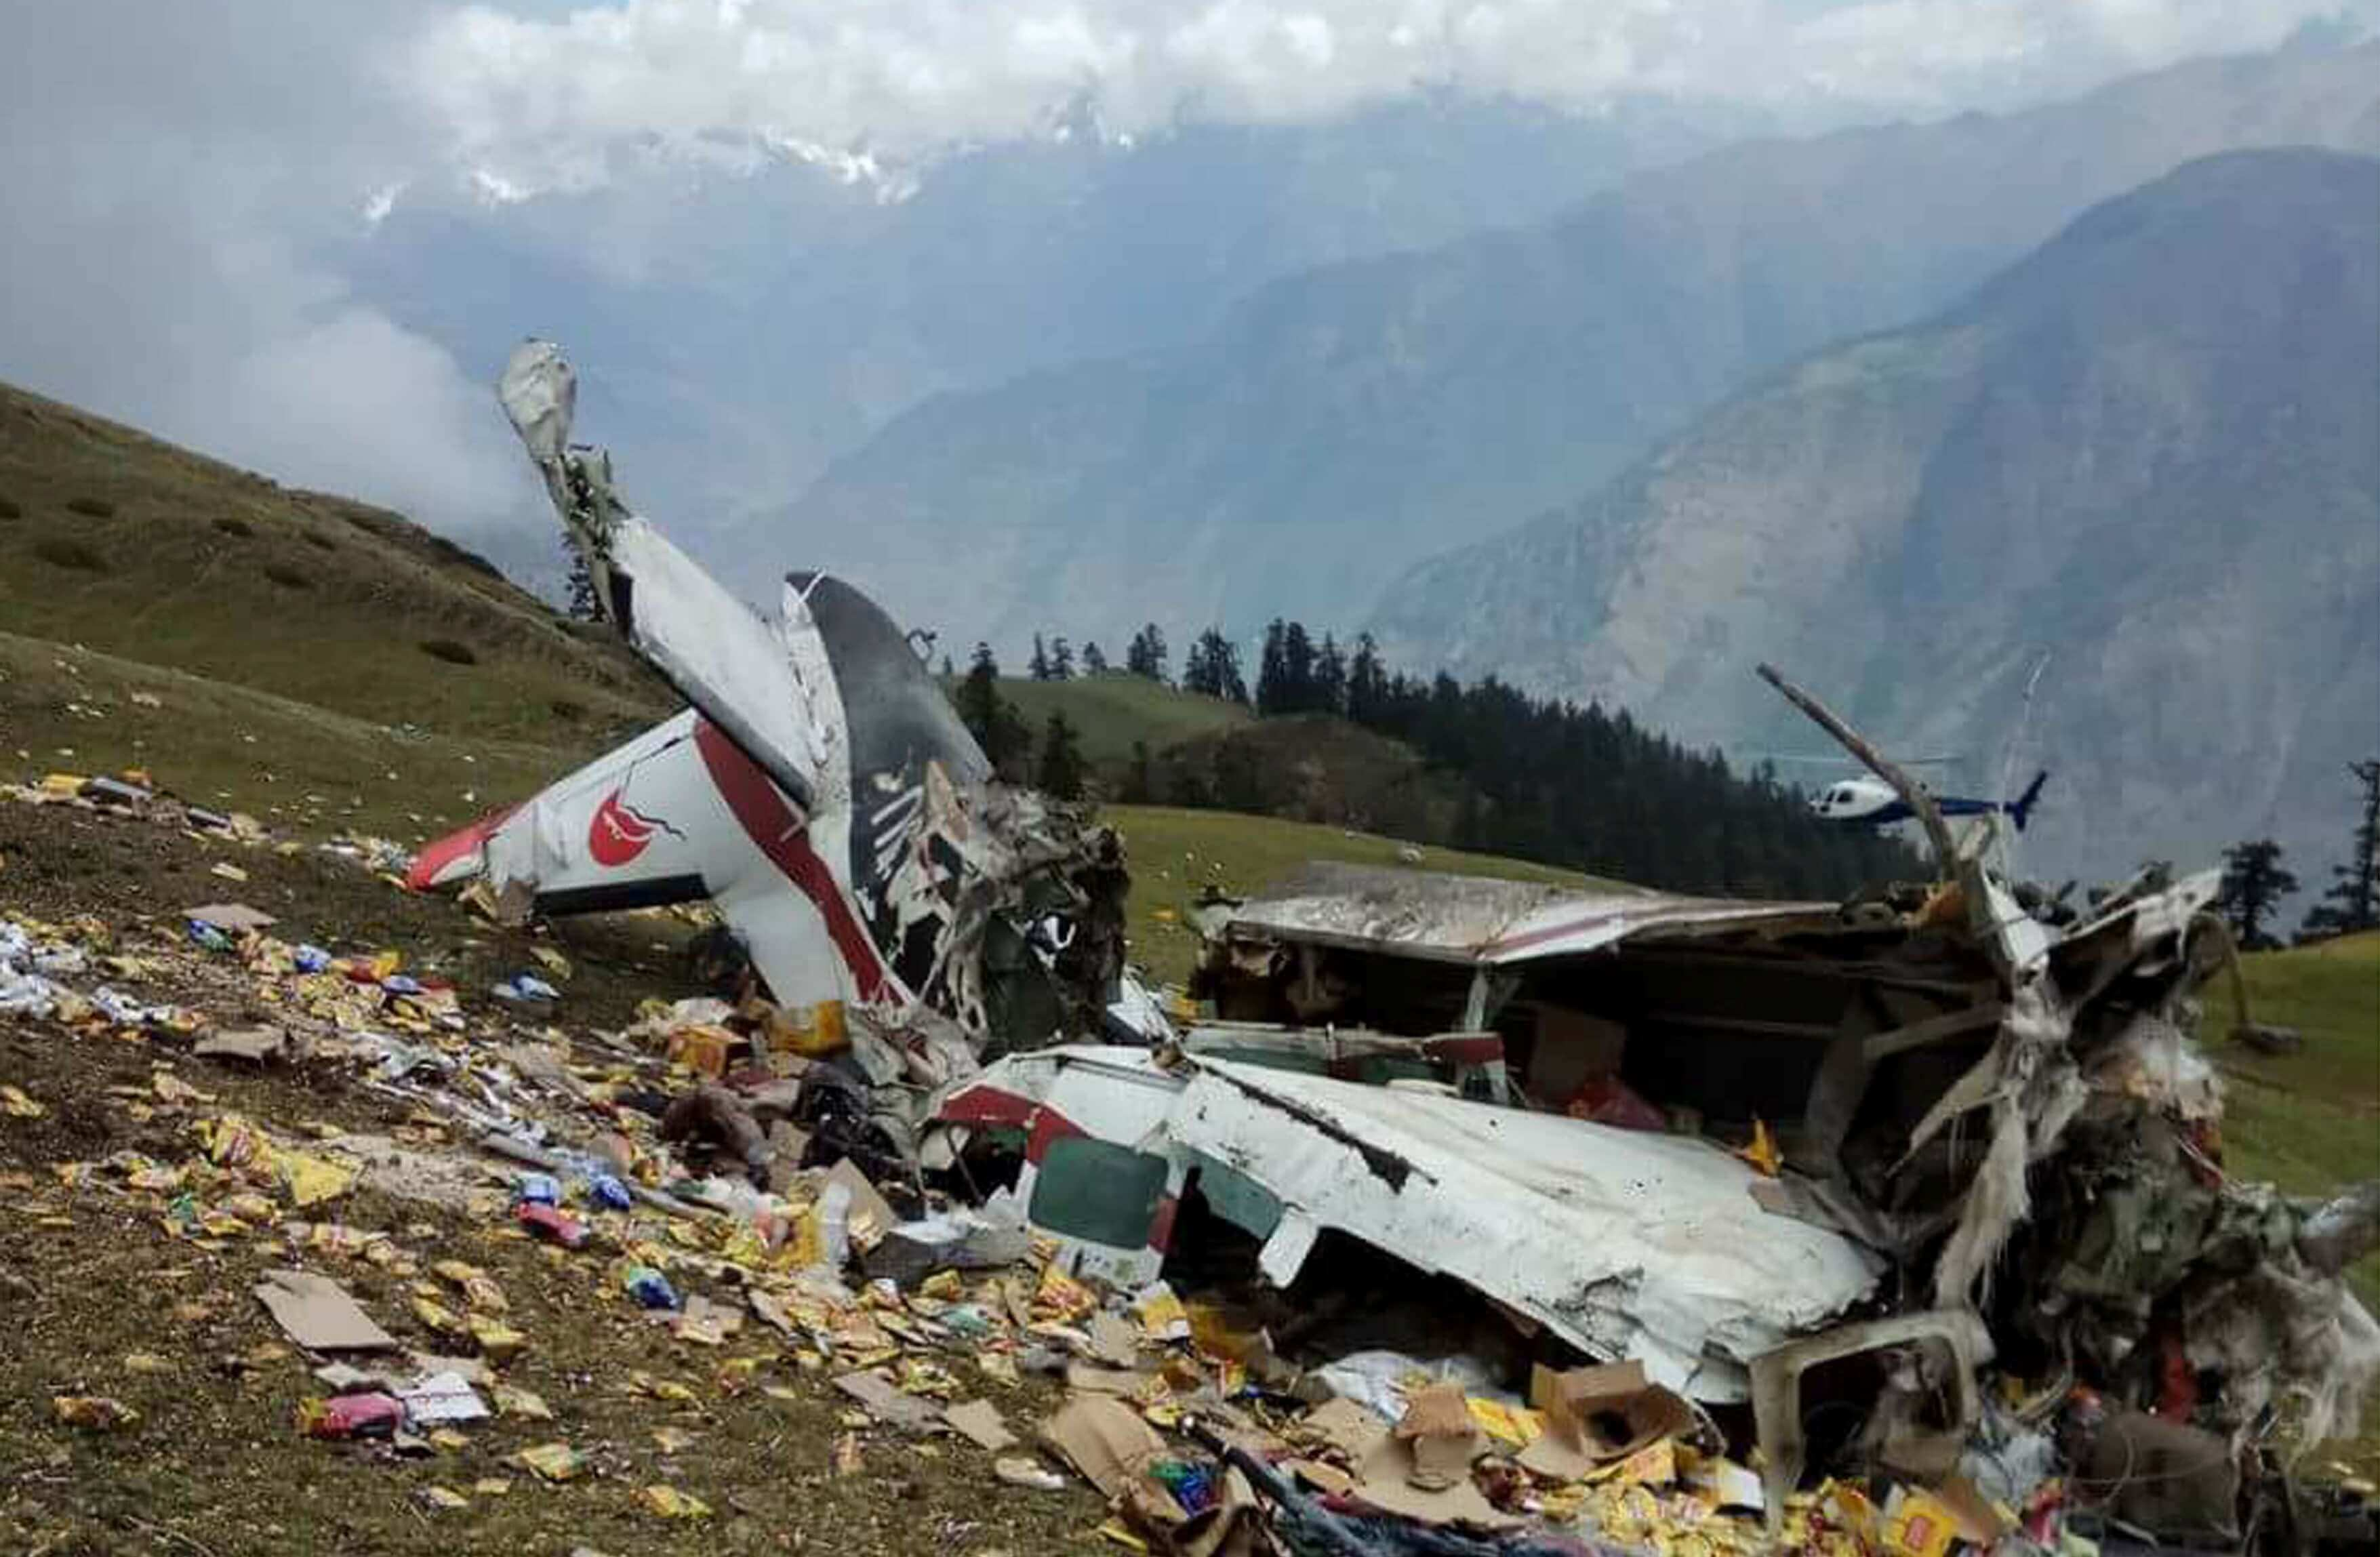 Makalu crash site